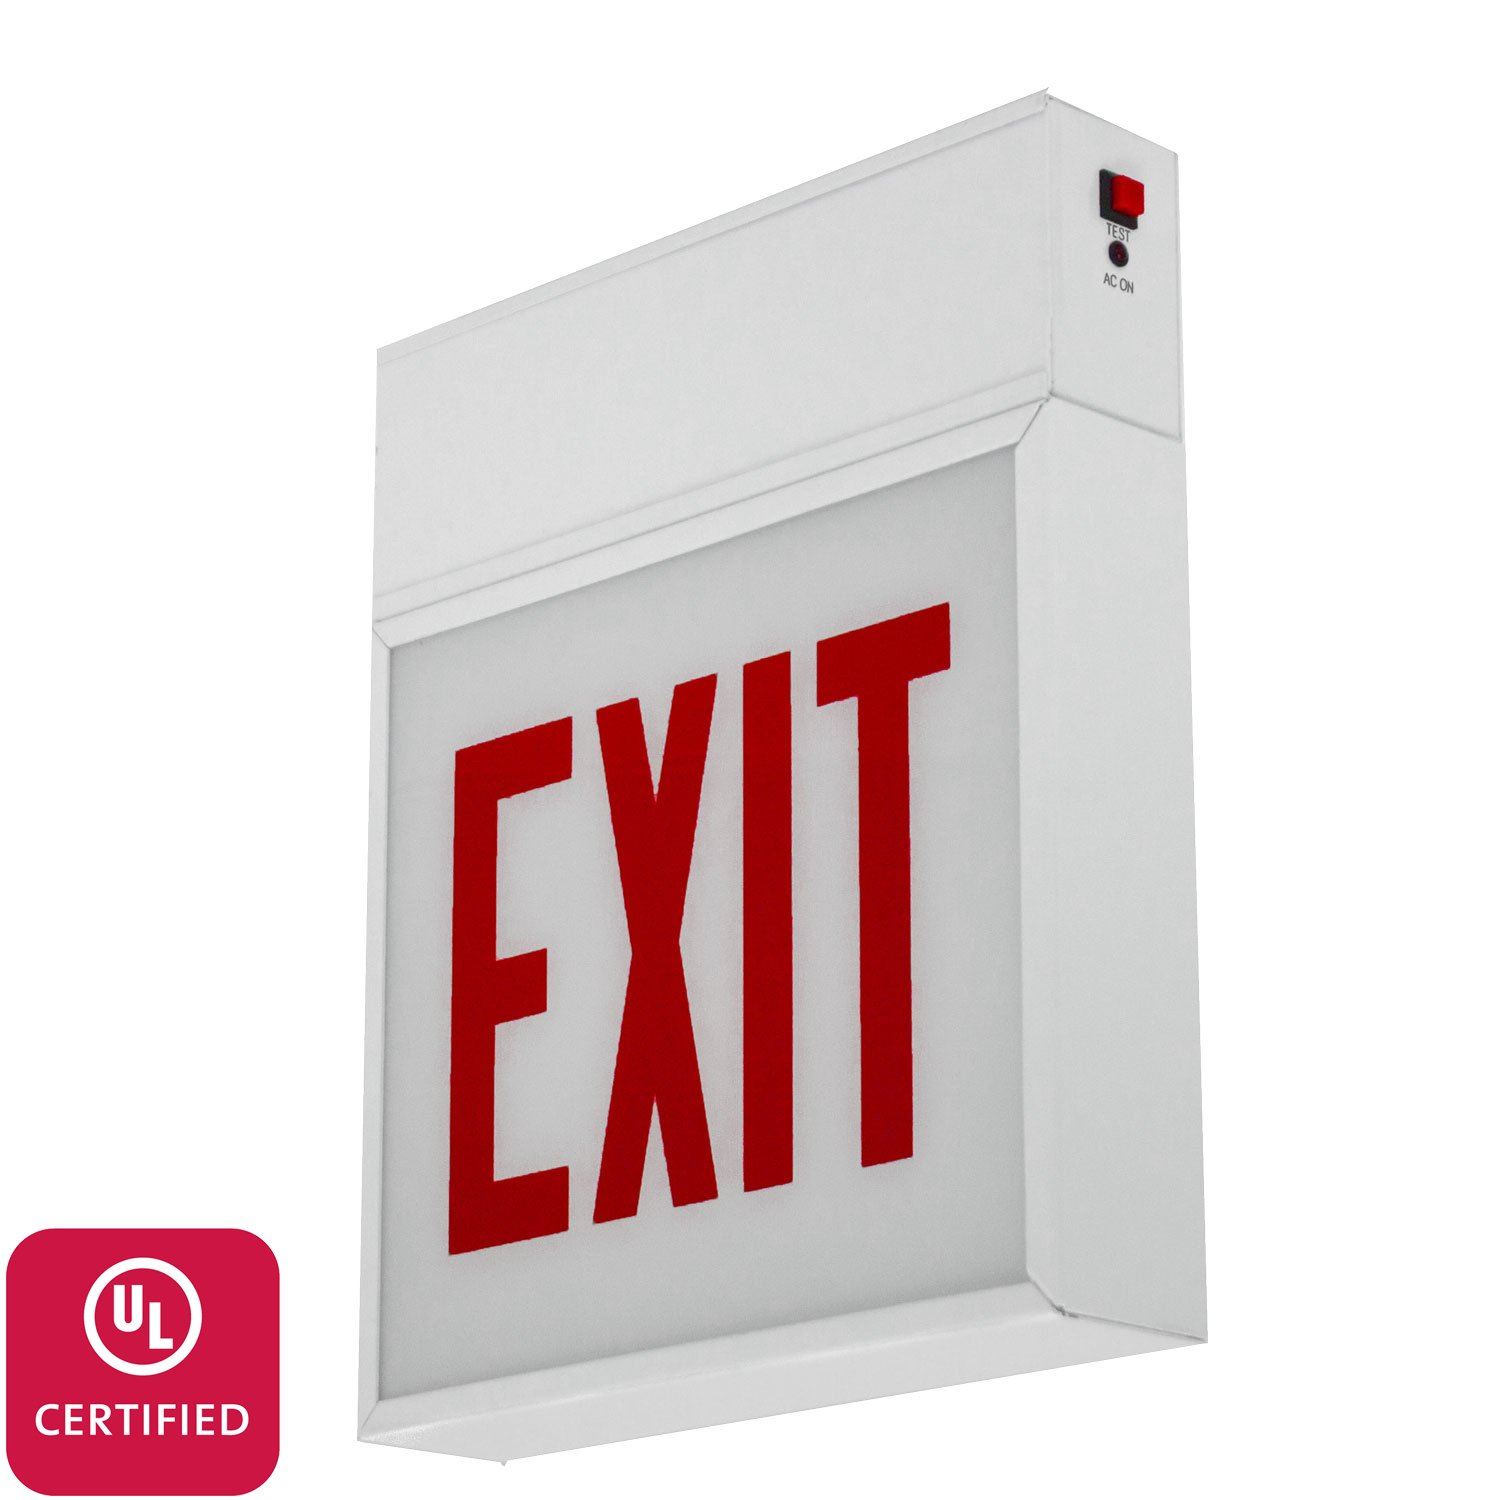 LFI Lights - UL Certified - Hardwired CHI Red Steel Exit Light- Chicago Rated - ALL LED Emergency Sign - CHEX